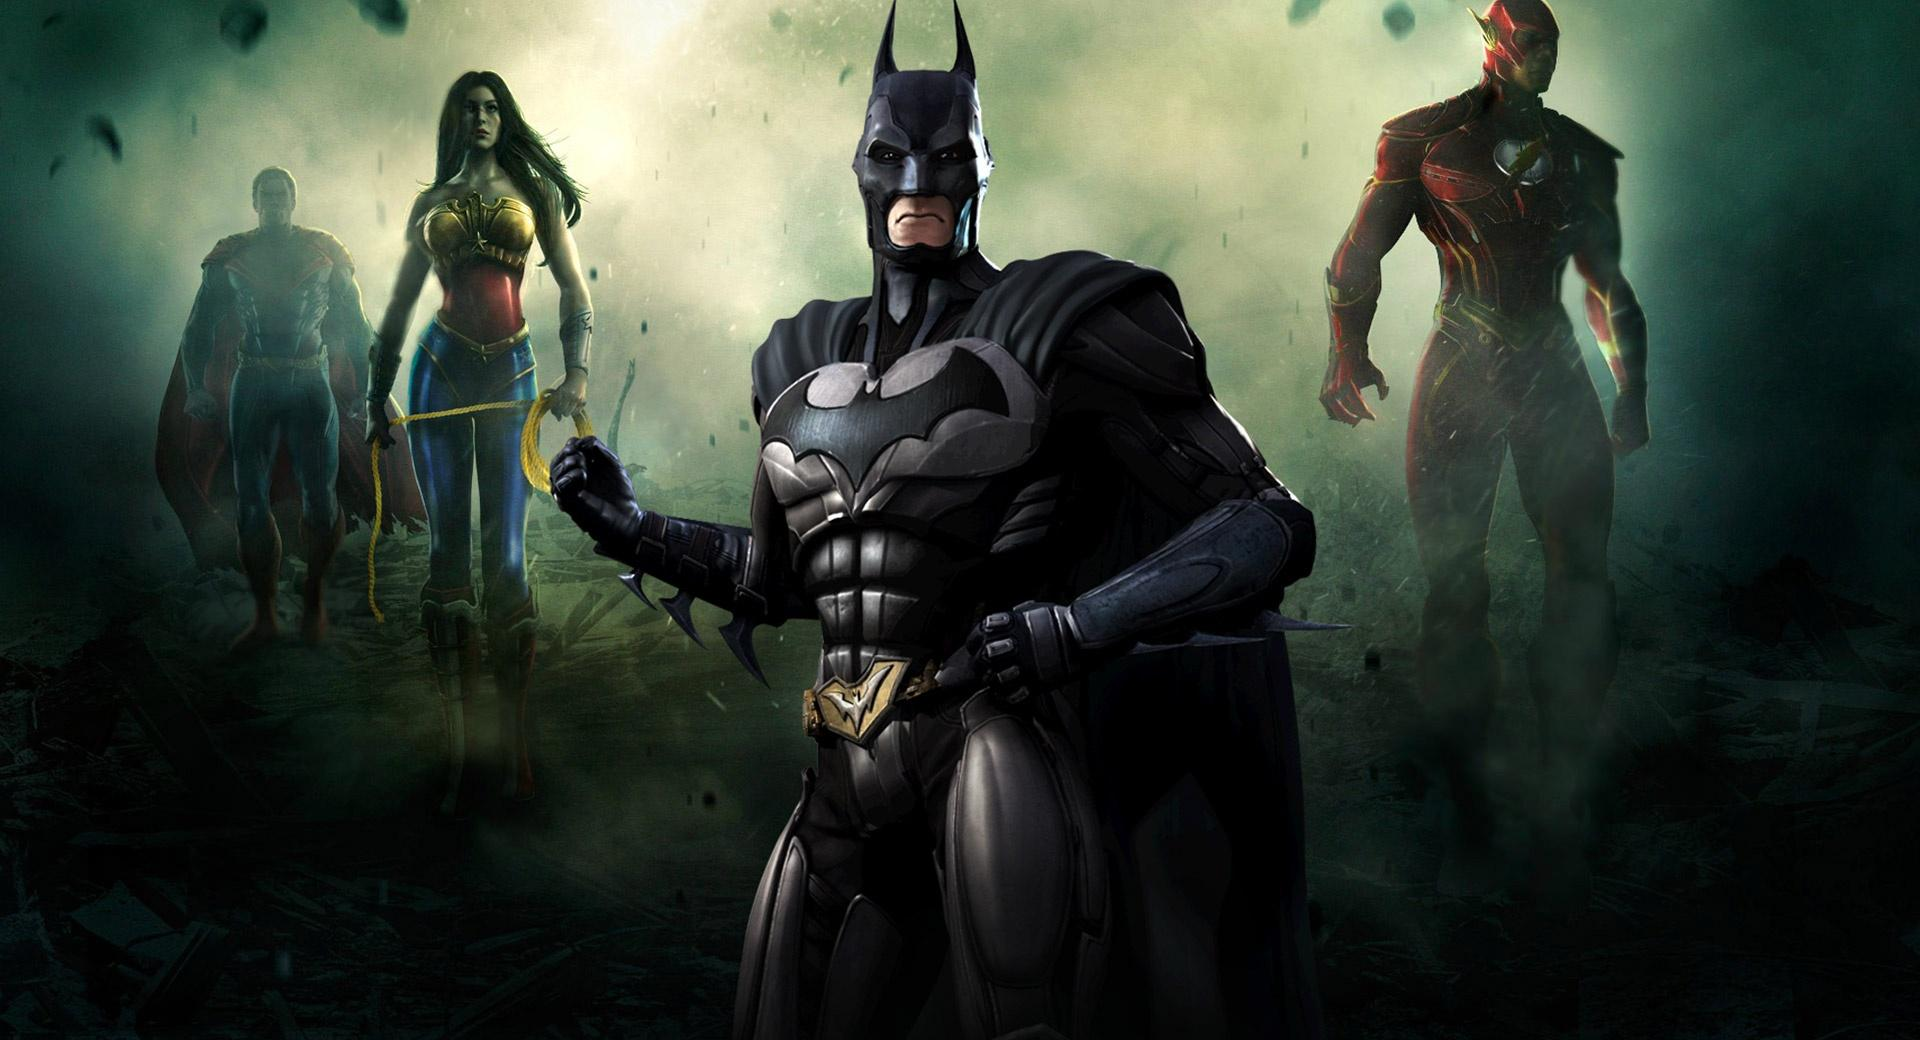 Injustice Gods Among Us - Batman wallpapers HD quality